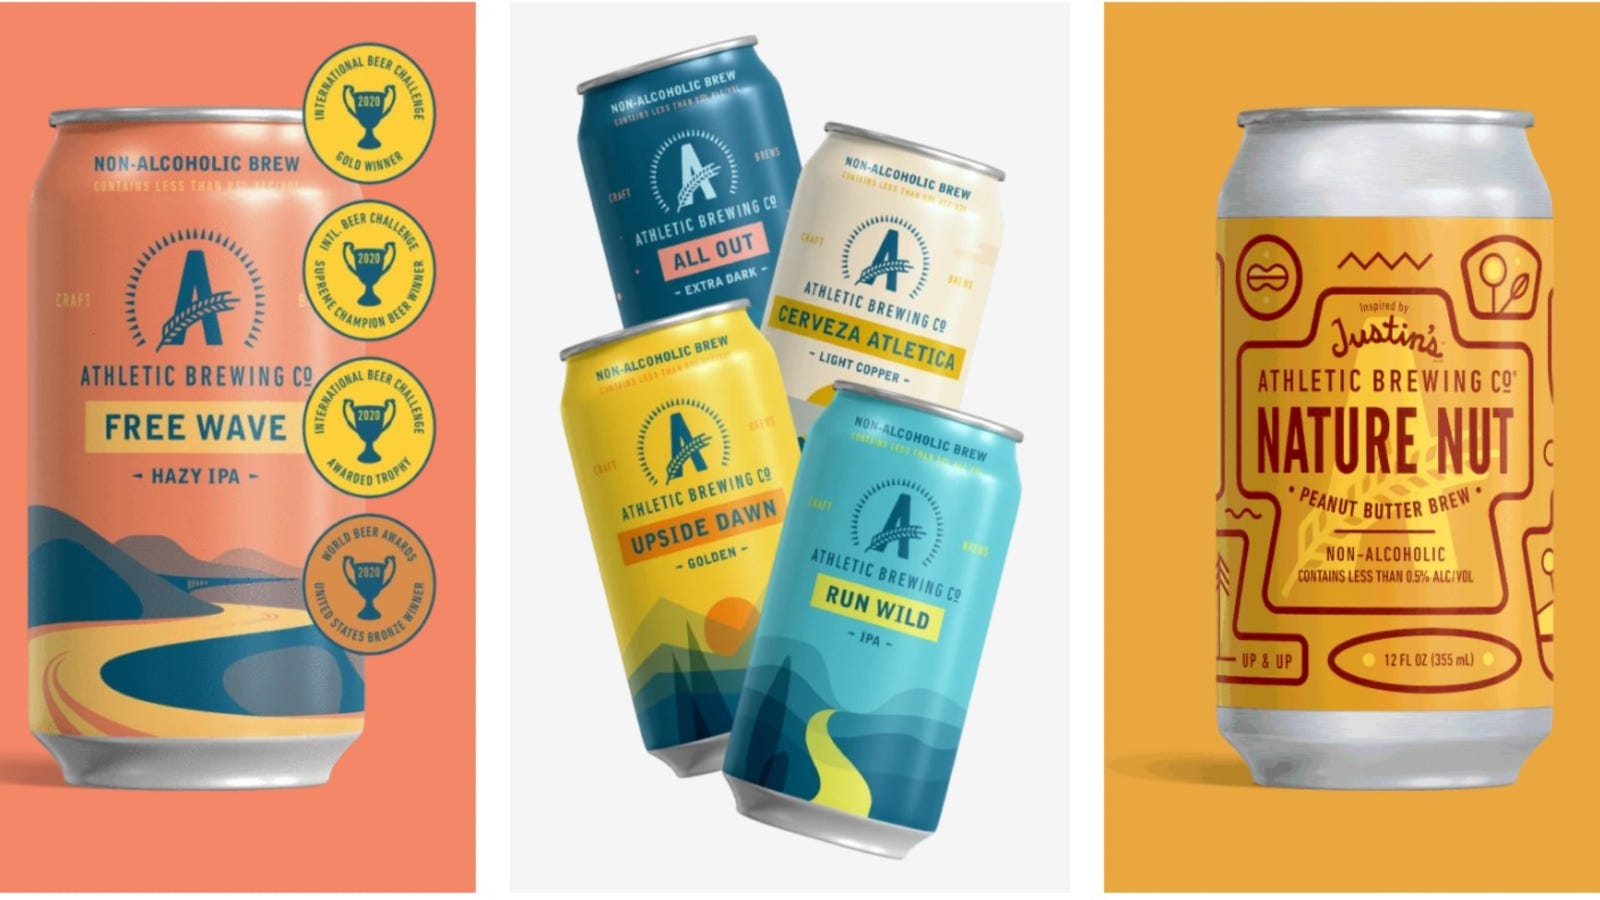 Three side by side images of Athletic Brewing Co. non-alcoholic beers.